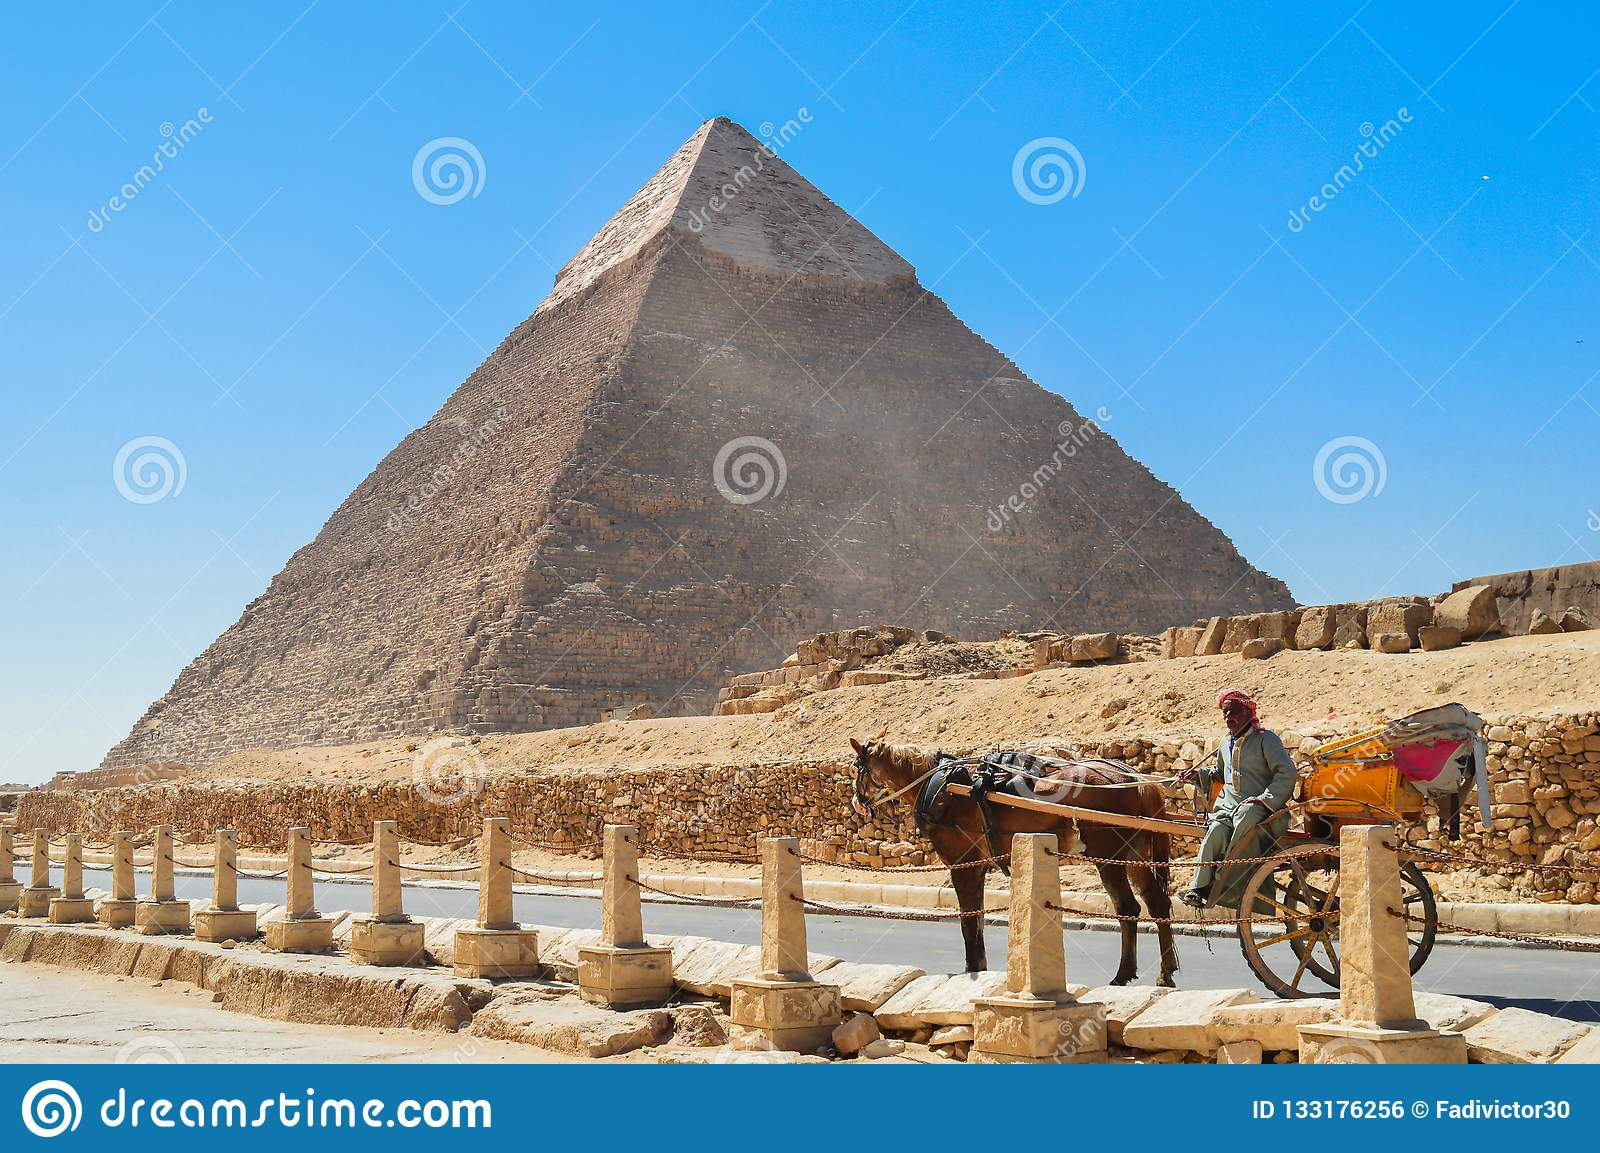 Horse Wagon at Giza Pyramids